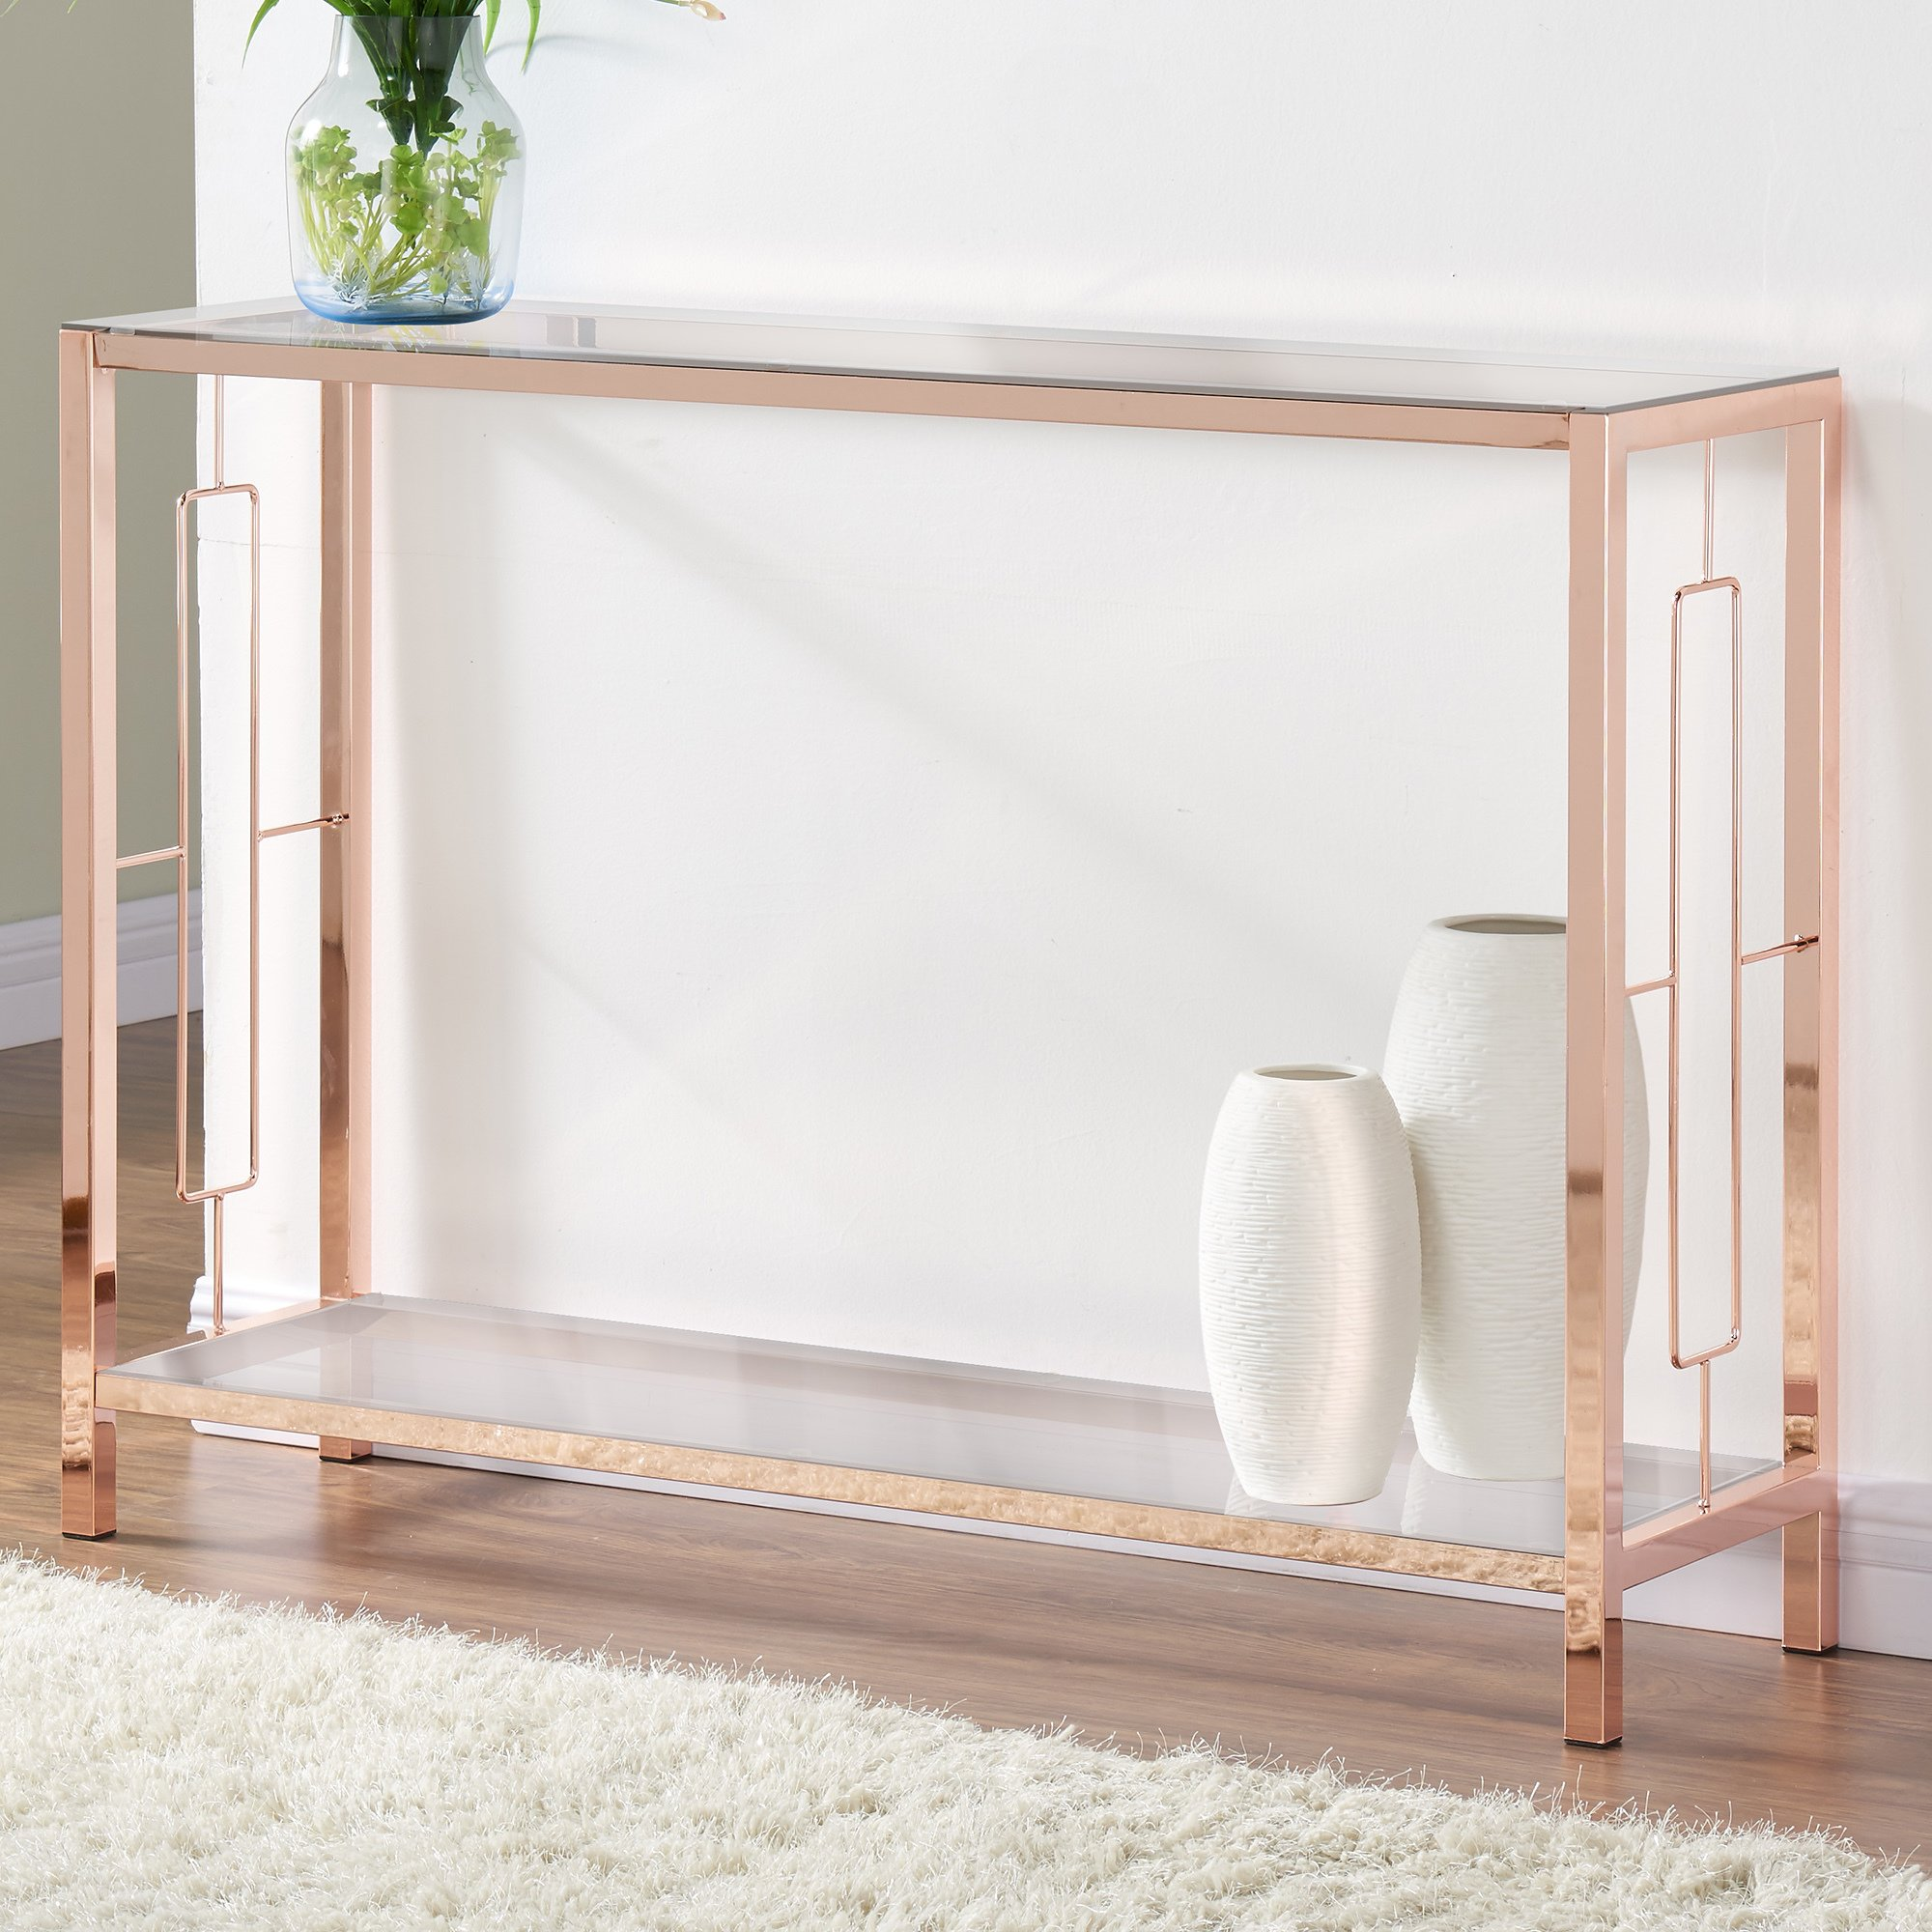 athena rose gold console table free shipping today accent circular patio cover square legs bohemian coffee pier imports round funky end tables tablecloth sliding barn door for